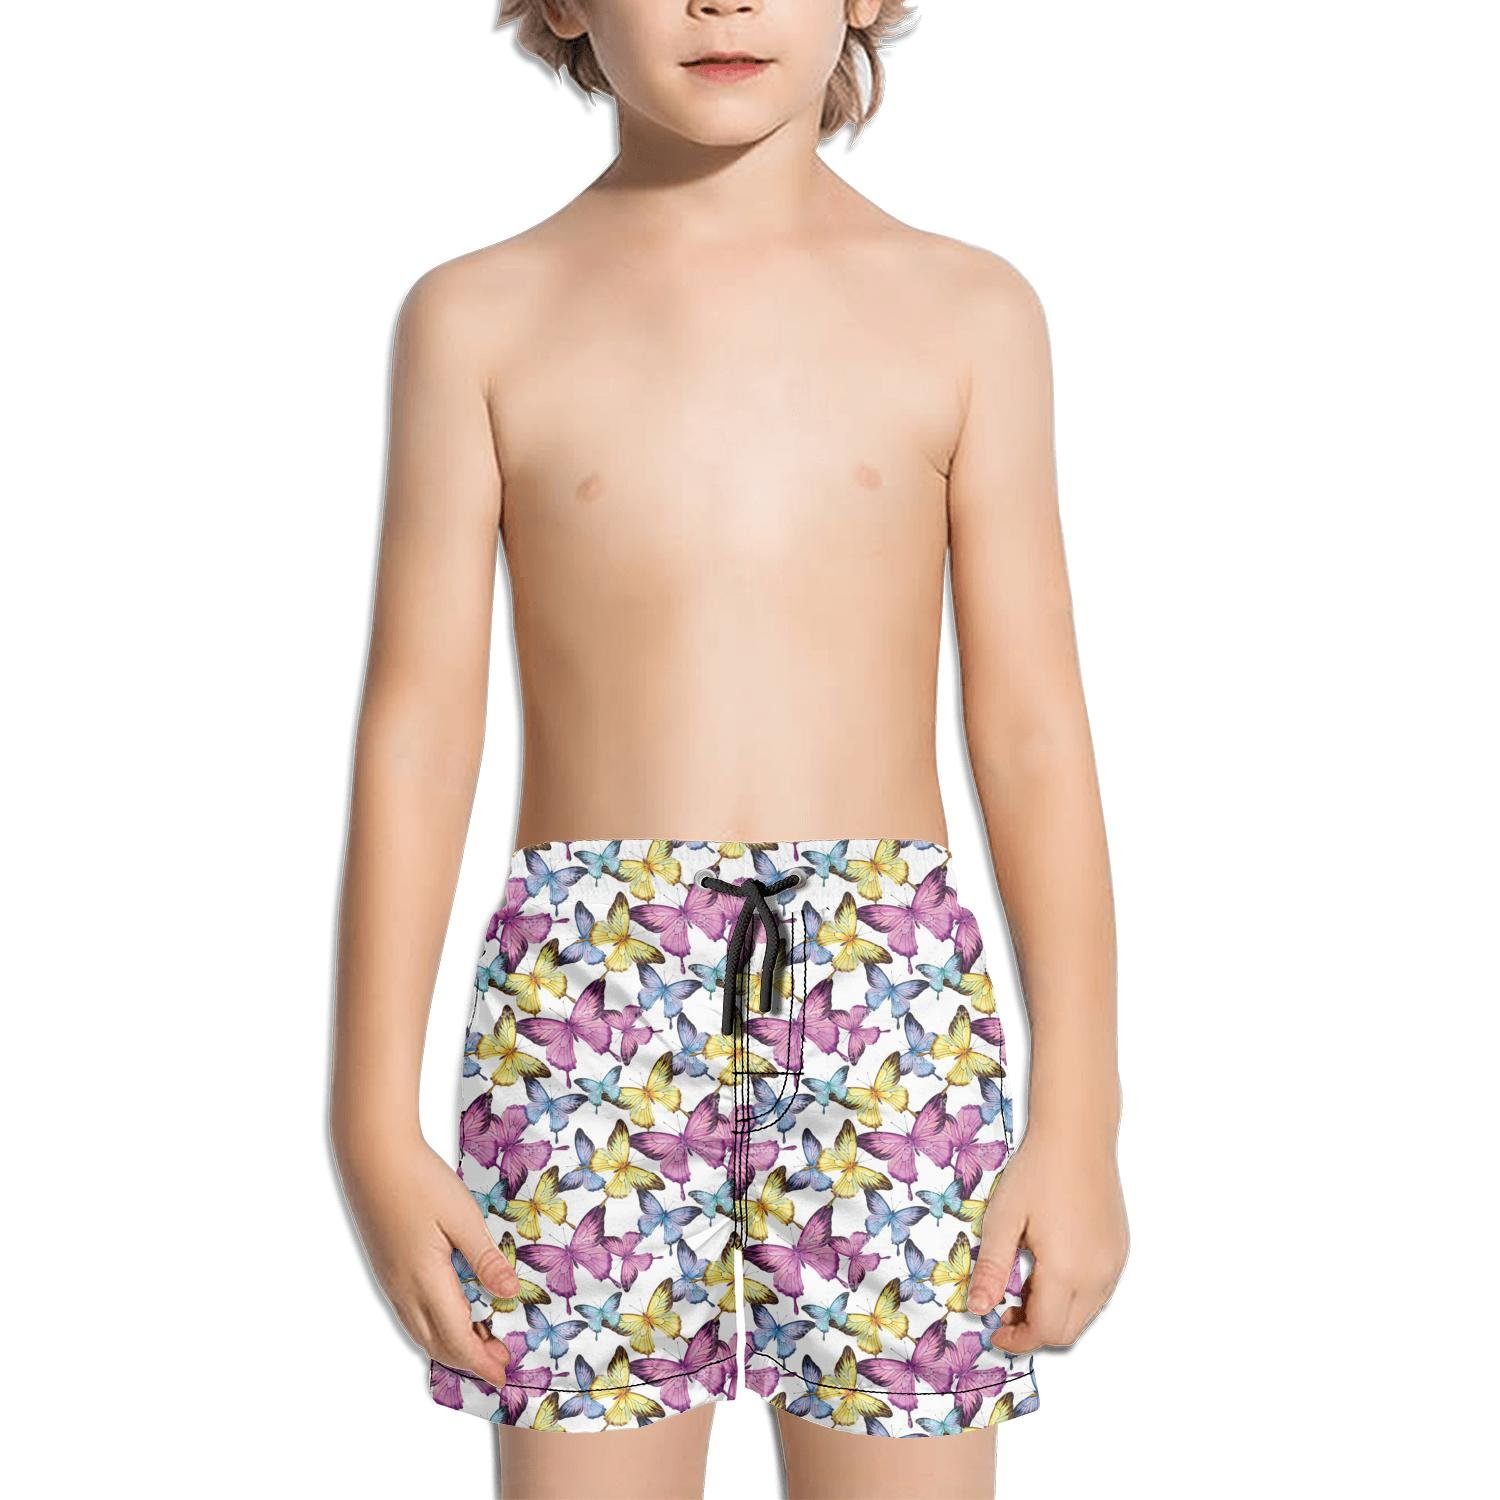 Websi Wihey Boy's Quick Dry Swim Trunks The Colourful Butterfly Fashione Shorts